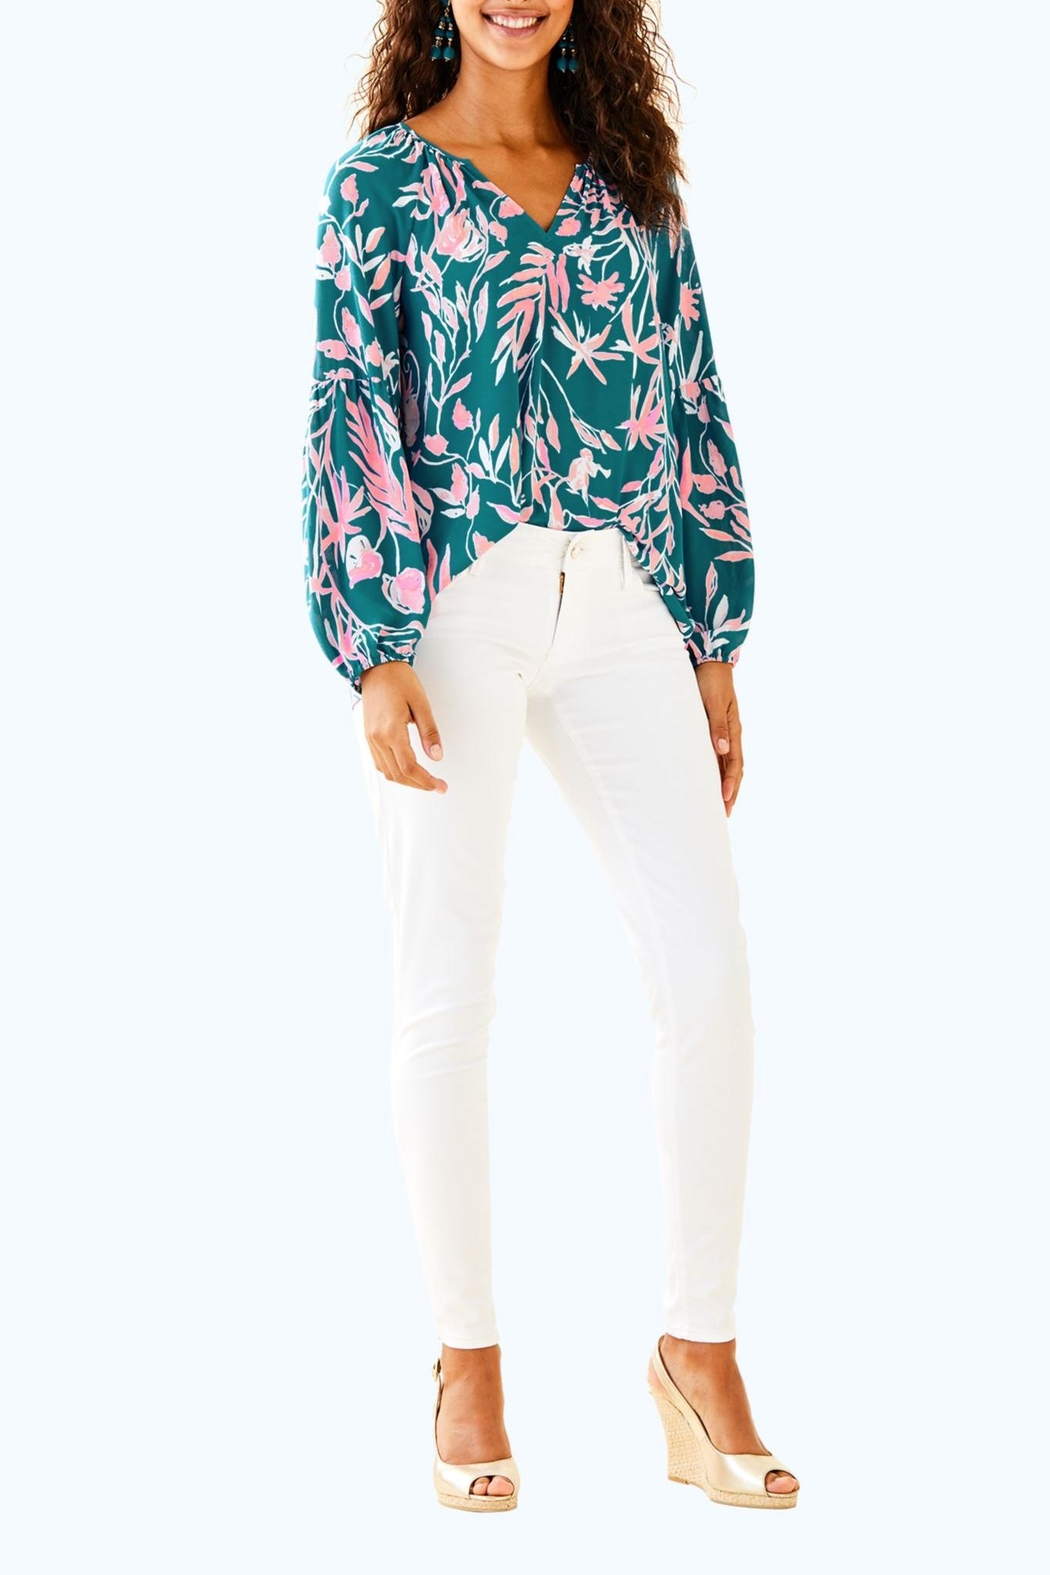 Lilly Pulitzer Charleigh Top - Side Cropped Image